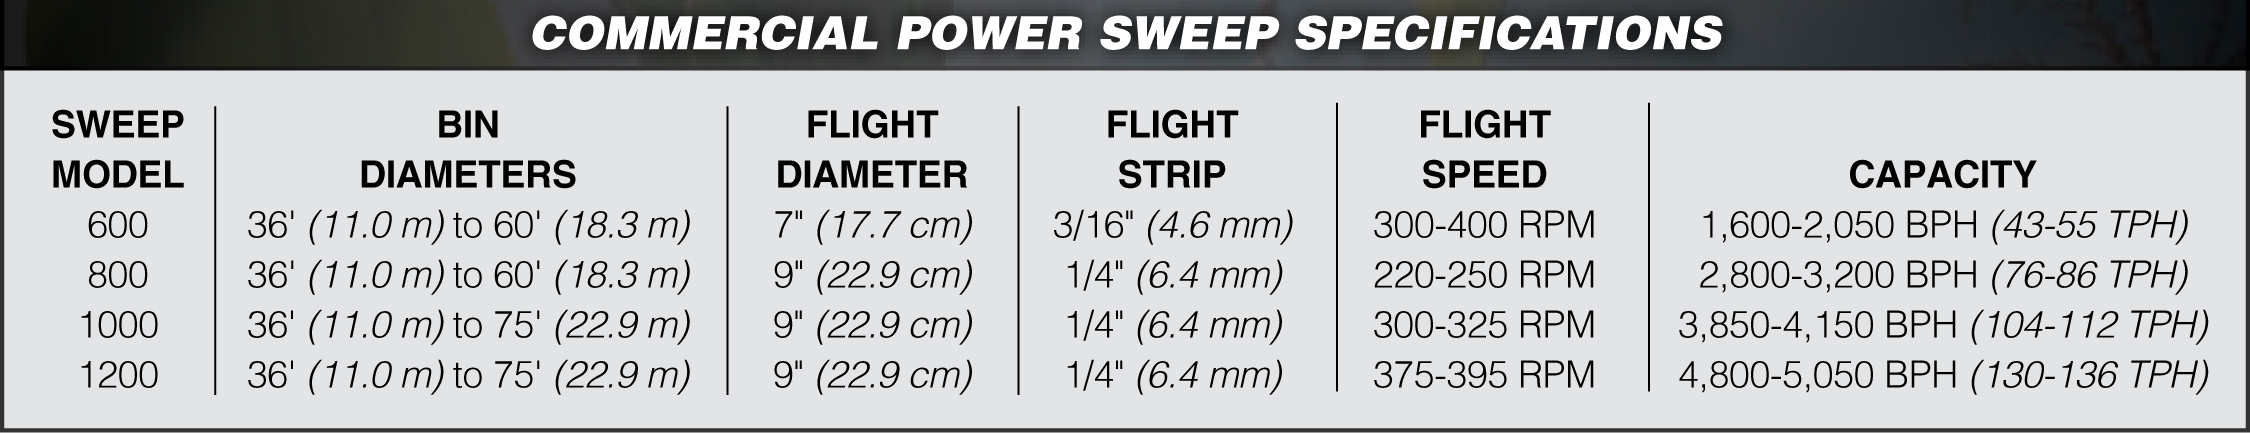 Hutchinson Commercial Power Sweep